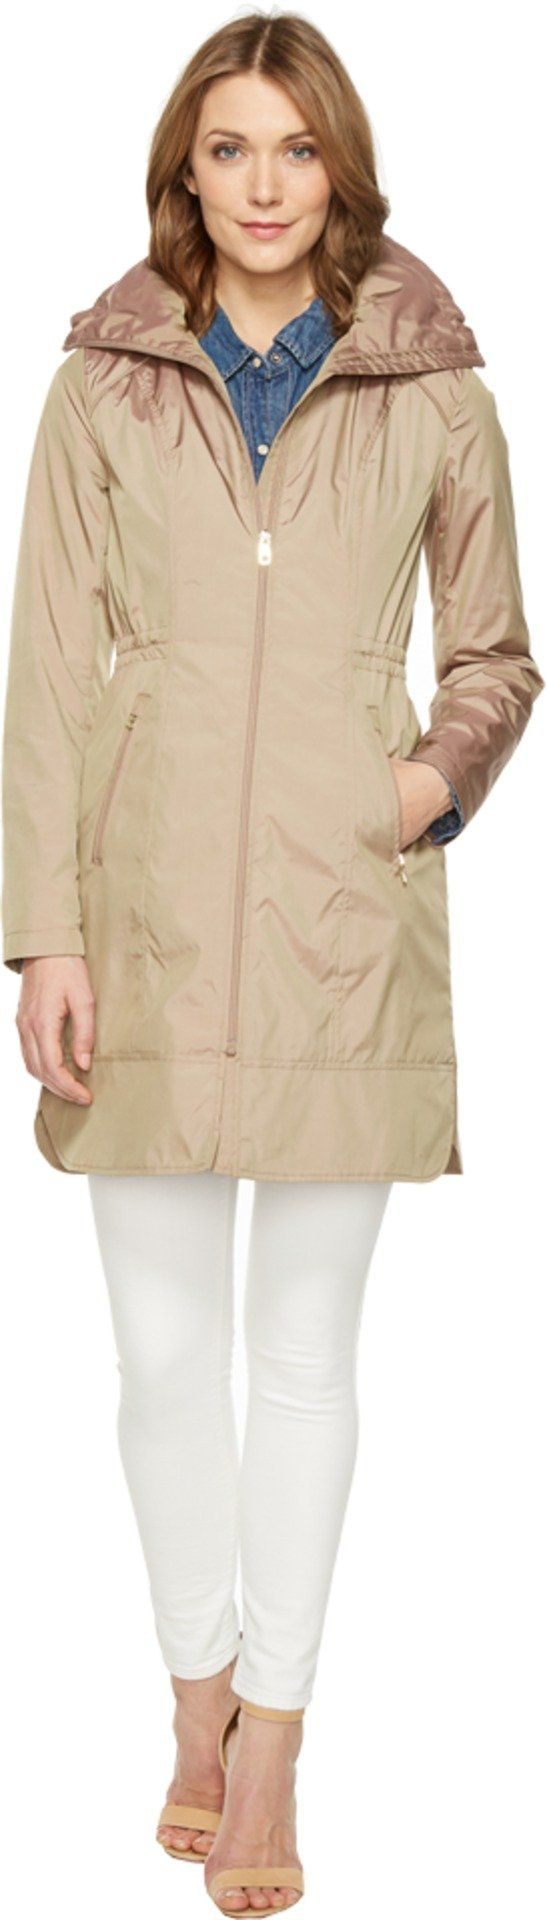 "Cole Haan Women's 36"" Single Breasted Rain Jacket with Packable Hood Champagne Outerwear"